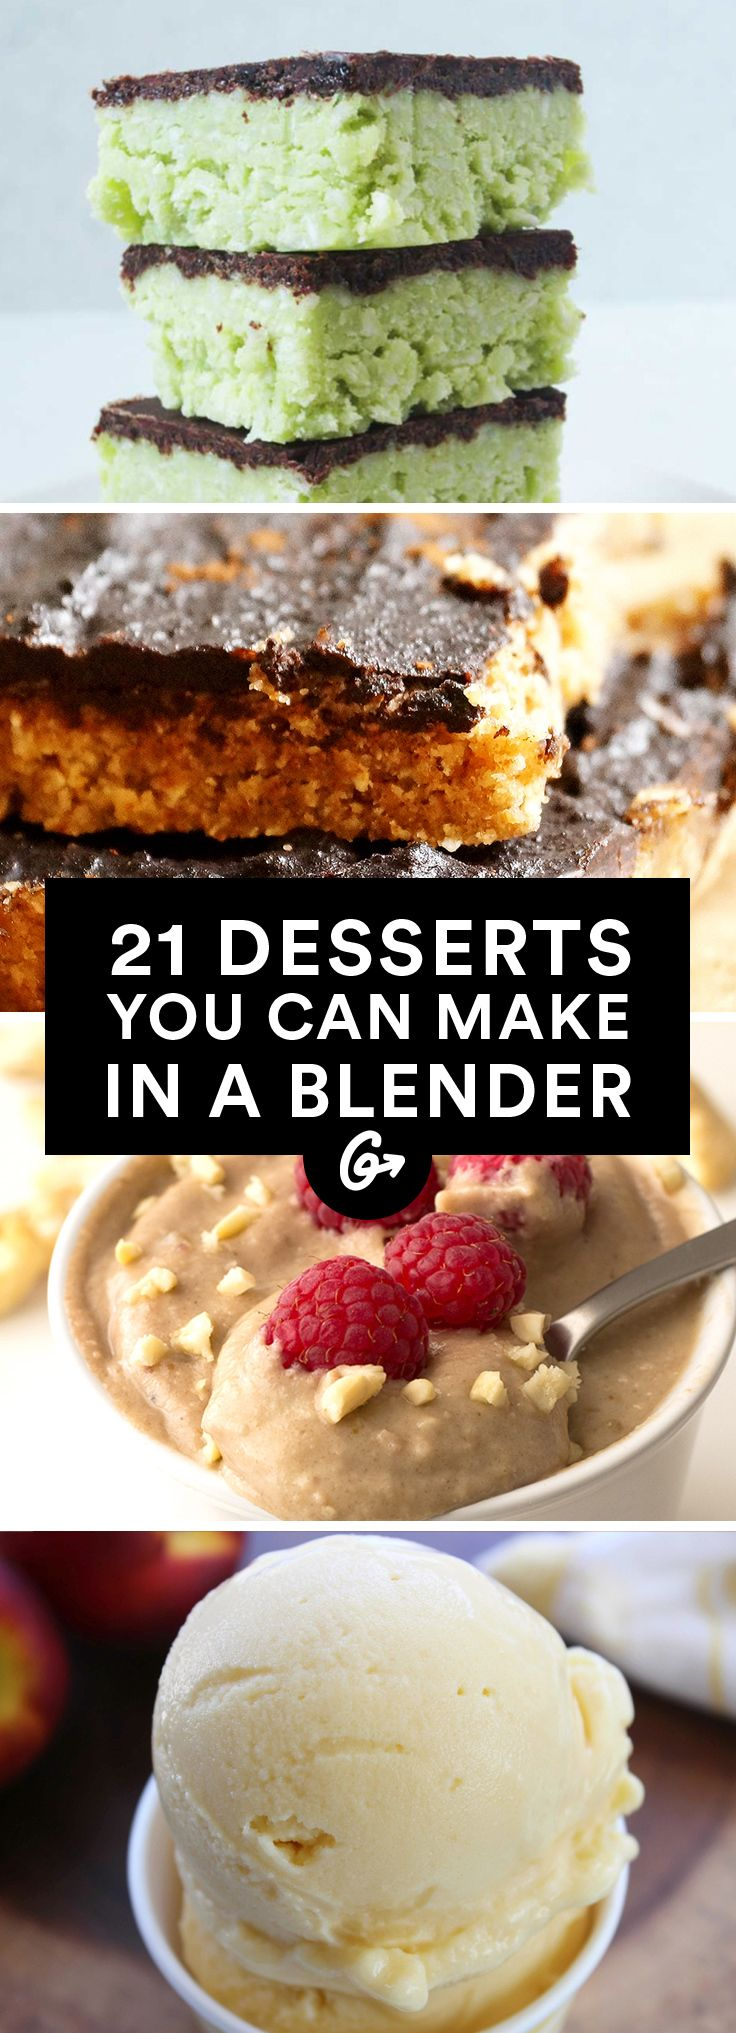 27 Healthy Desserts You Can Make in a Blender  #blender #desserts http://greatist.com/eat/healthy-blender-dessert-recipes